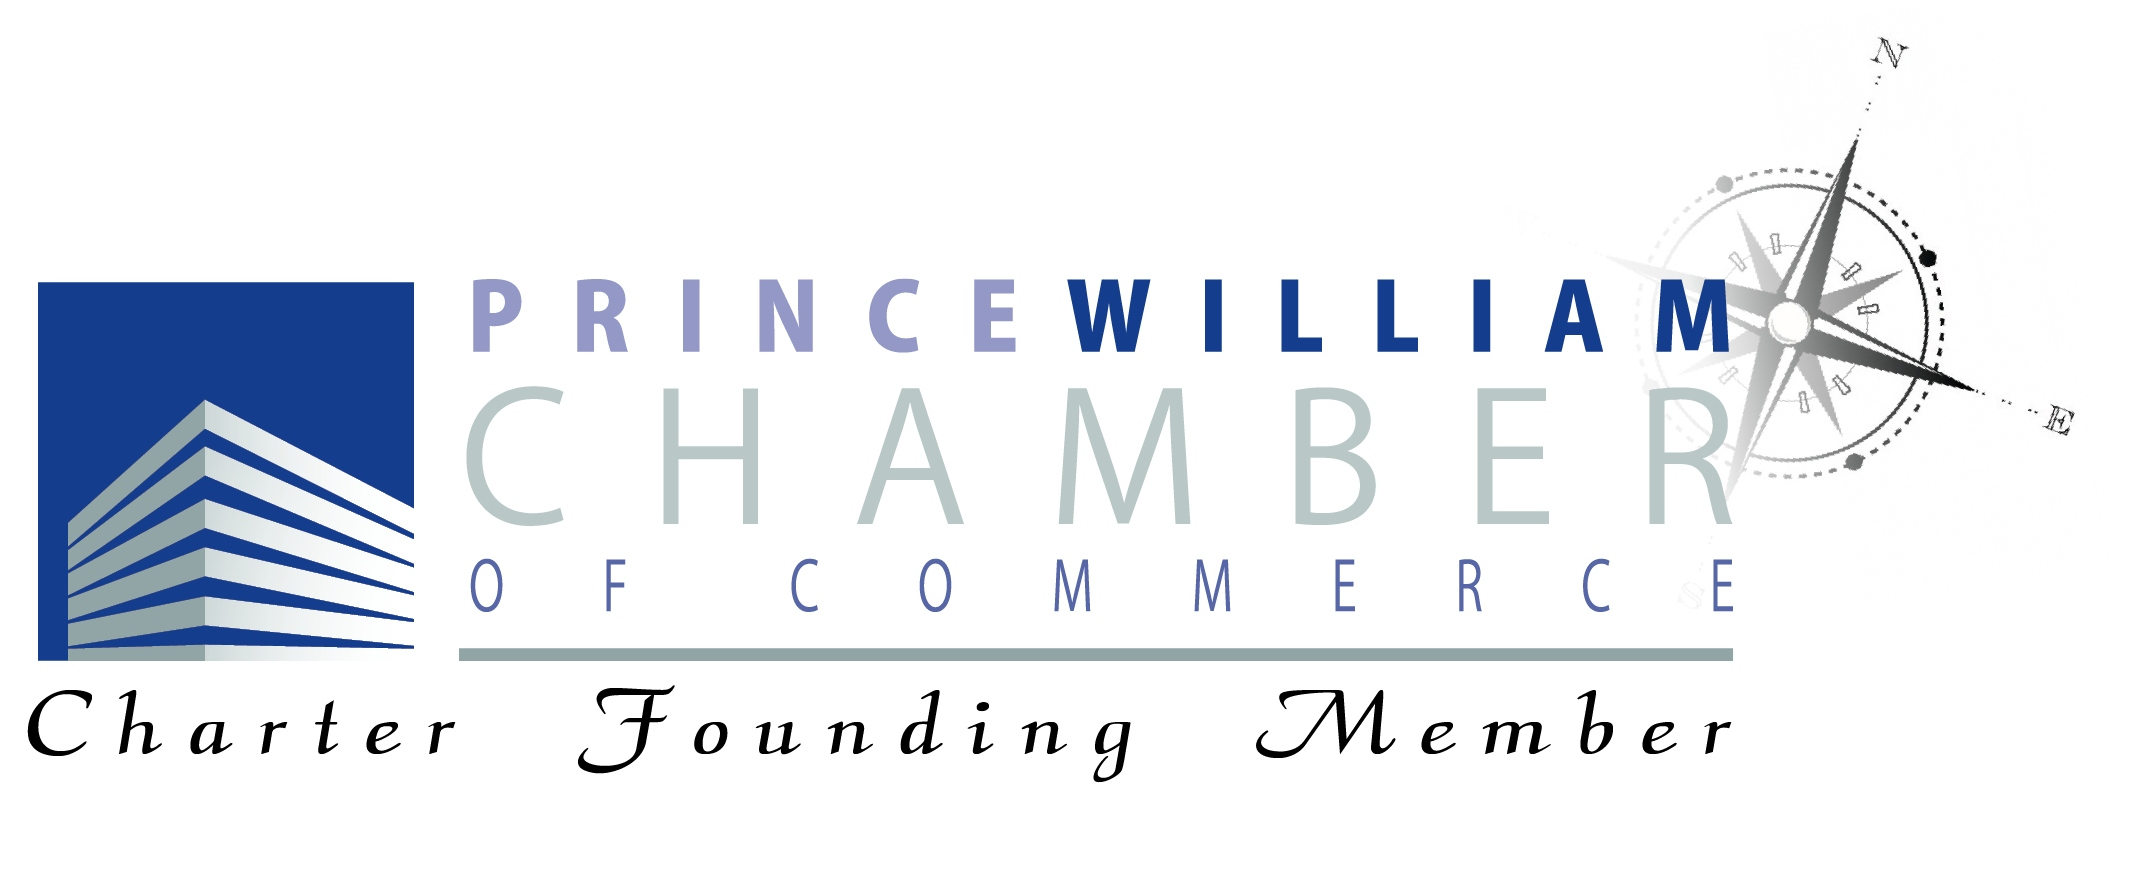 Become a Charter Founding Member